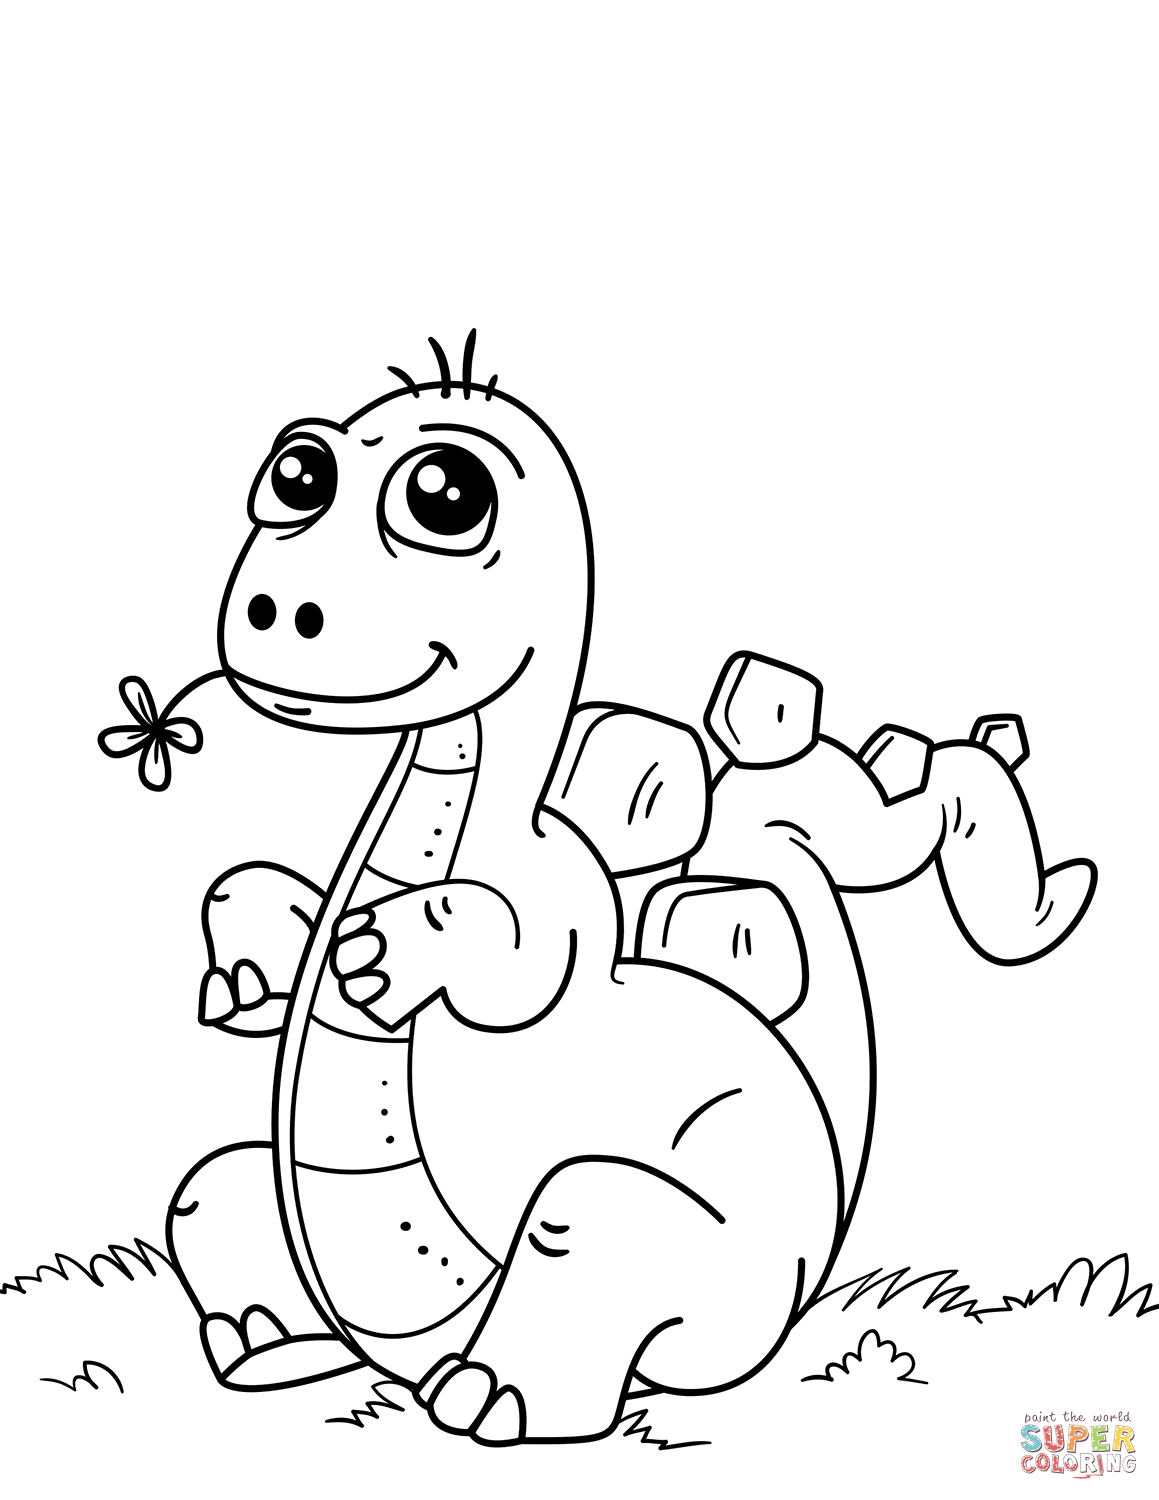 Cute Little Dinosaur Coloring Page